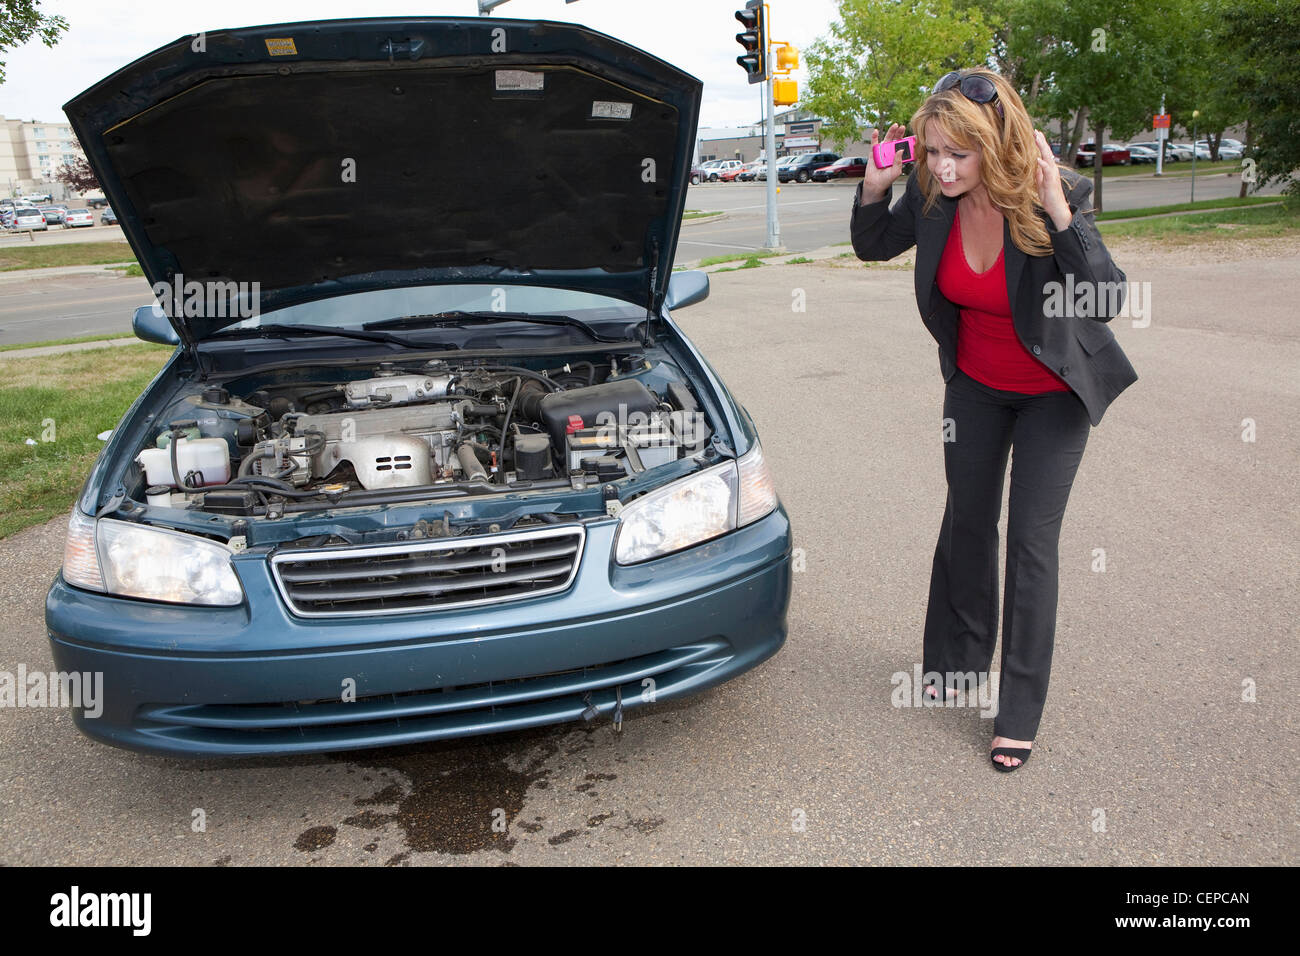 a woman looks at fluid leaking from her car; edmonton, alberta, canada - Stock Image